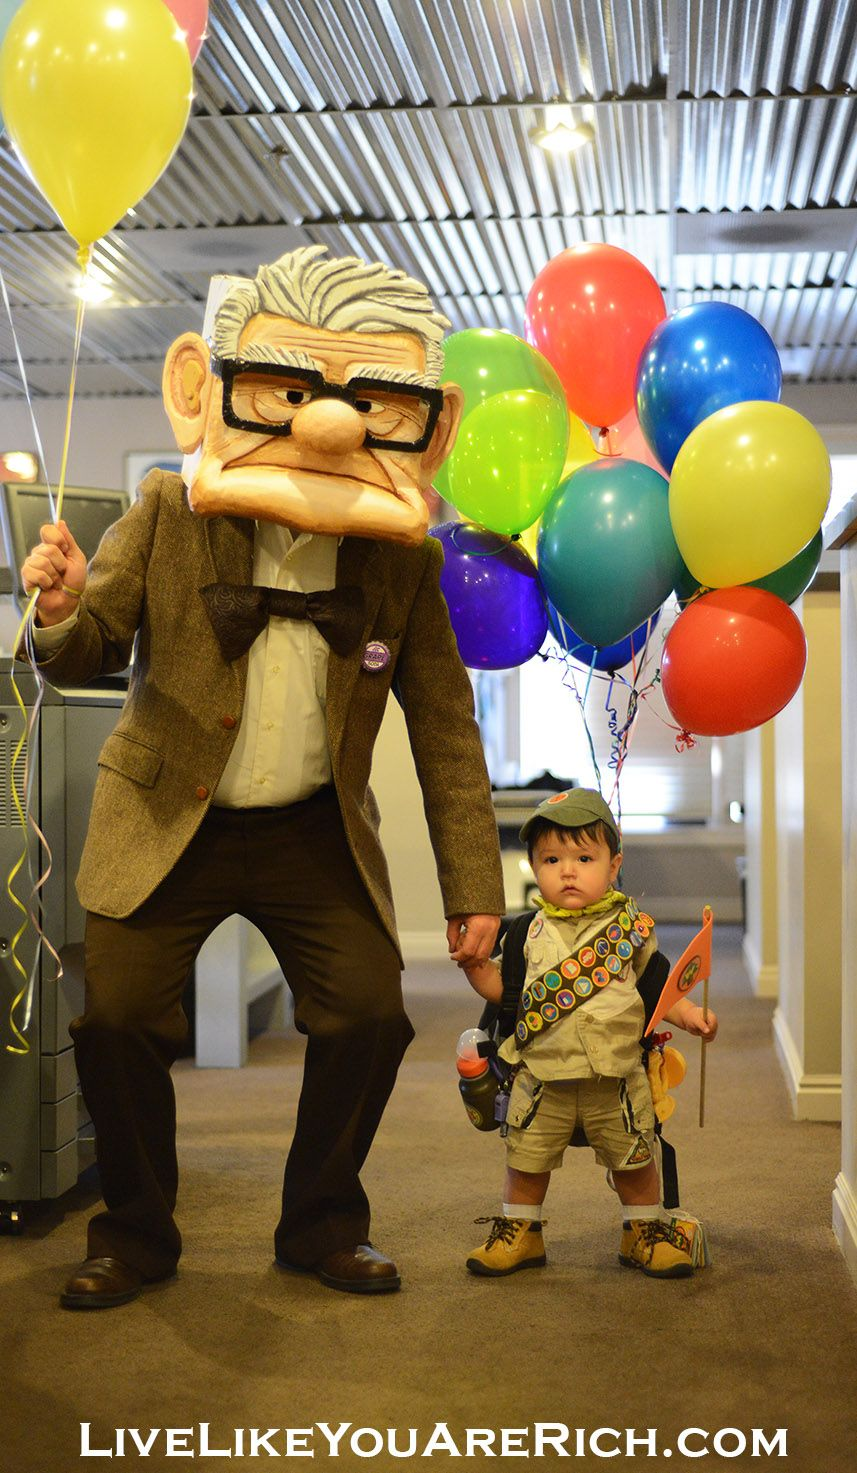 How To Make a Mr. Fredricksen Costume from the Movie 'UP